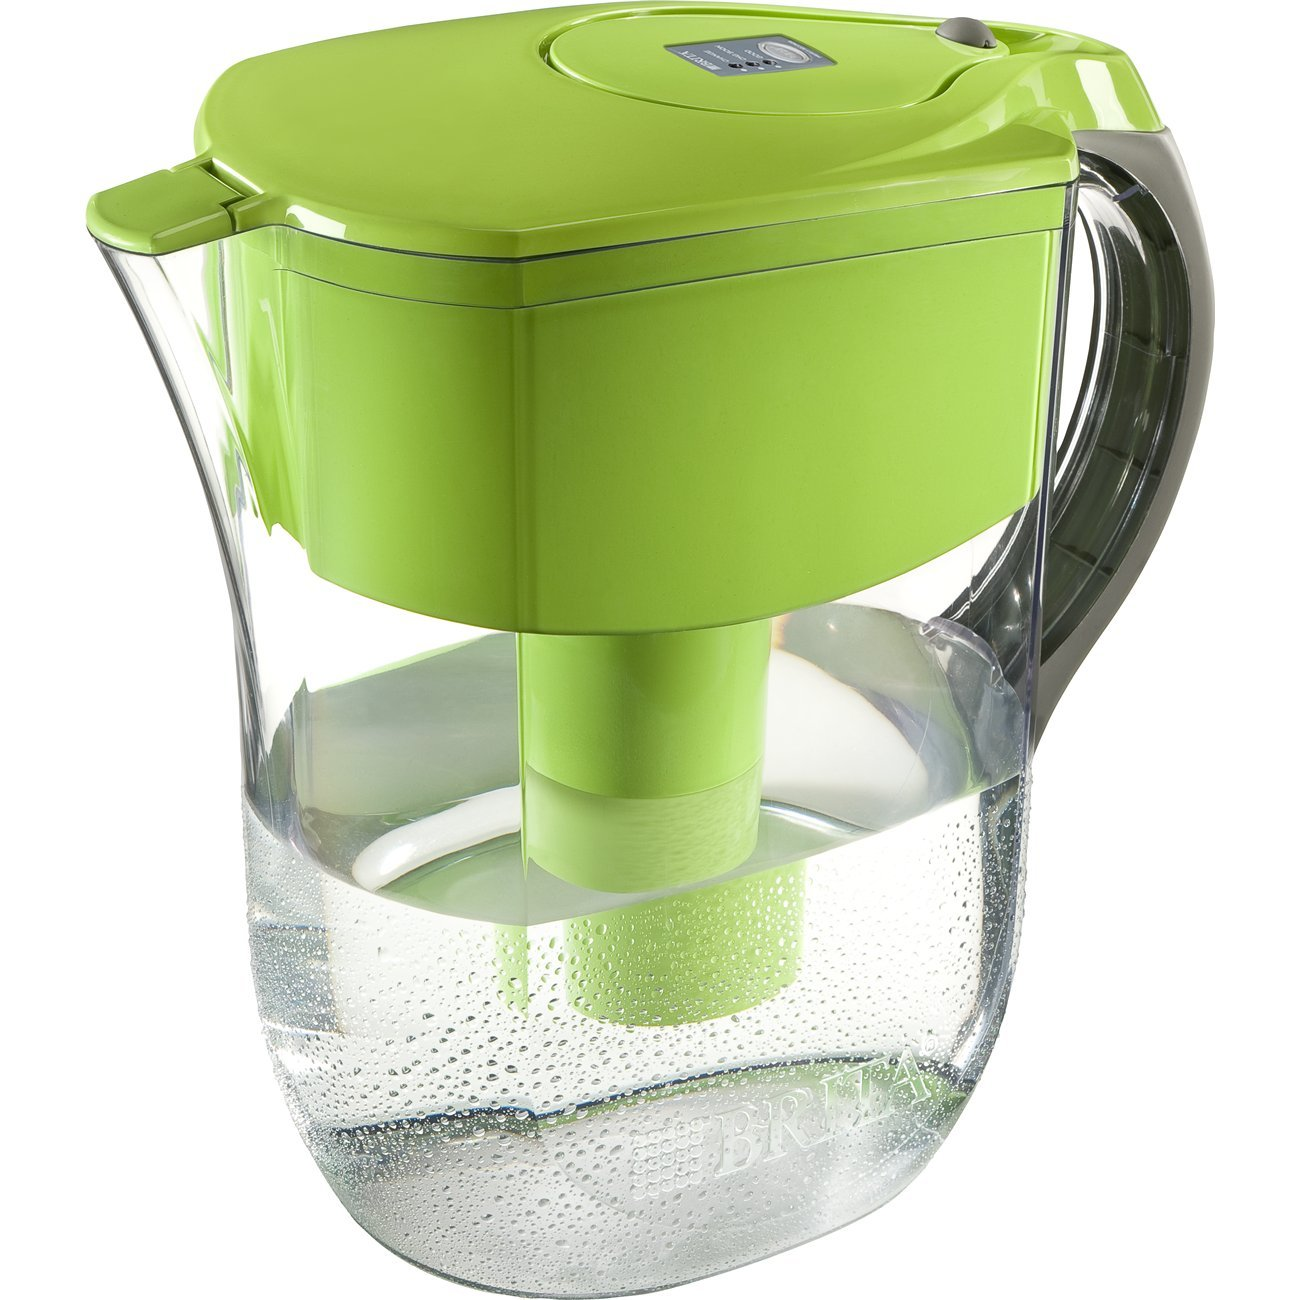 Brita Large 10 Cup Water Filter Pitcher with 1 Standard Filter, BPA Free – Grand, Multiple Colors by Brita (Image #9)